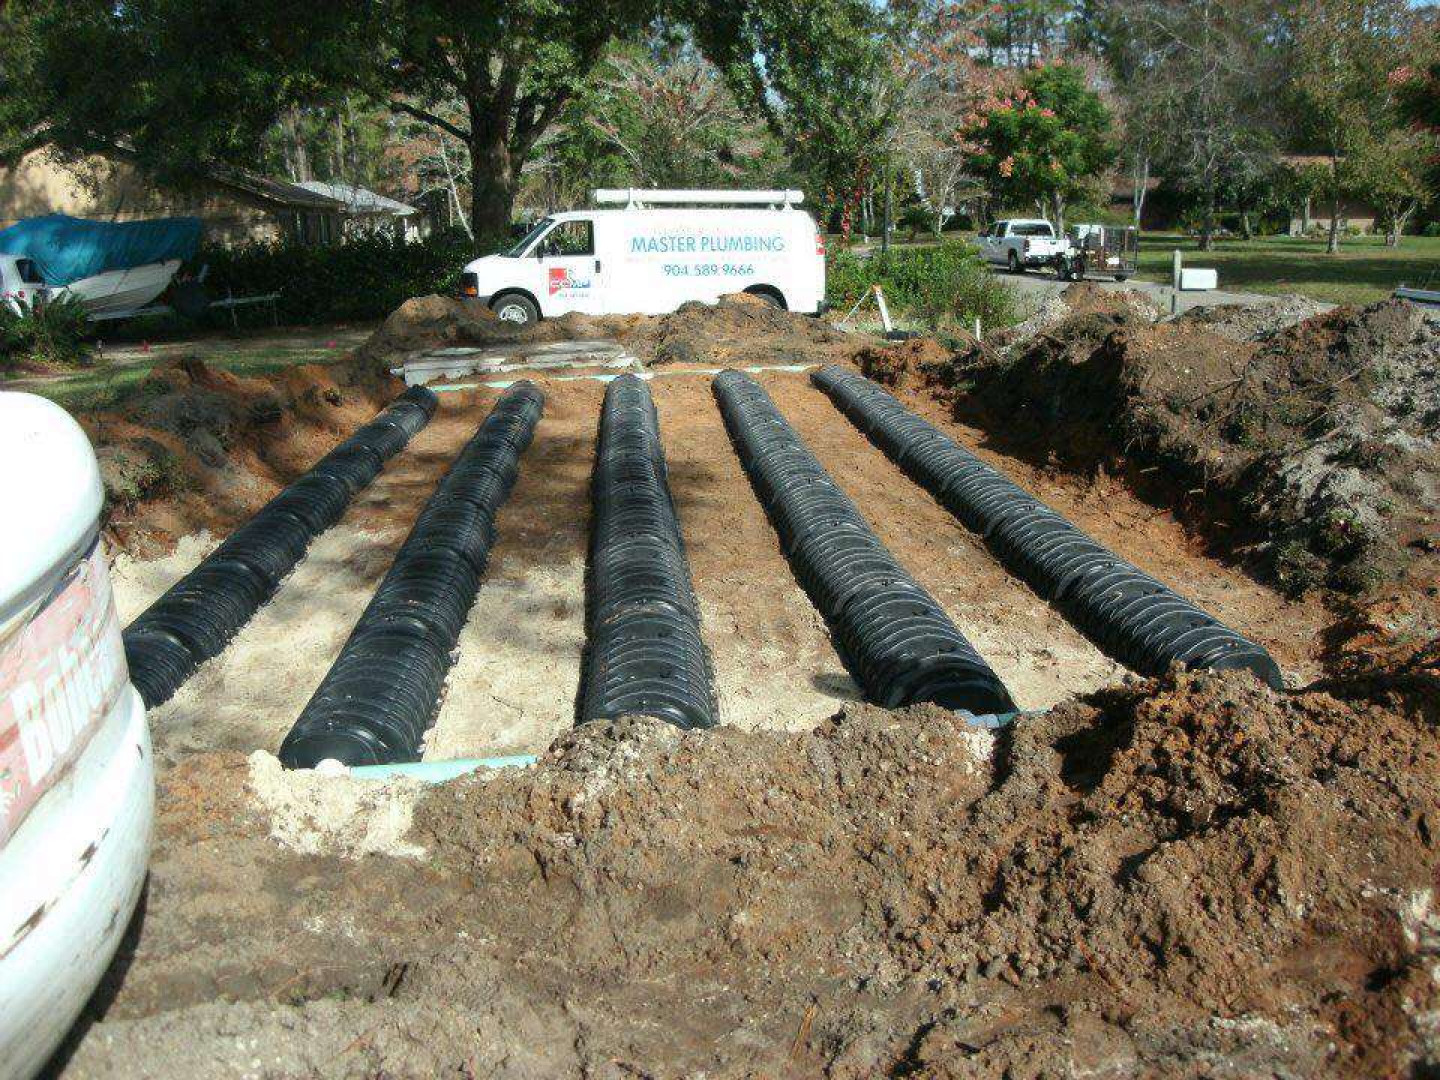 SEPTIC SYSTEM INSTALLATION & SEWER REPAIR SERVICES IN MIDDLEBURG & LAKESIDE, FL